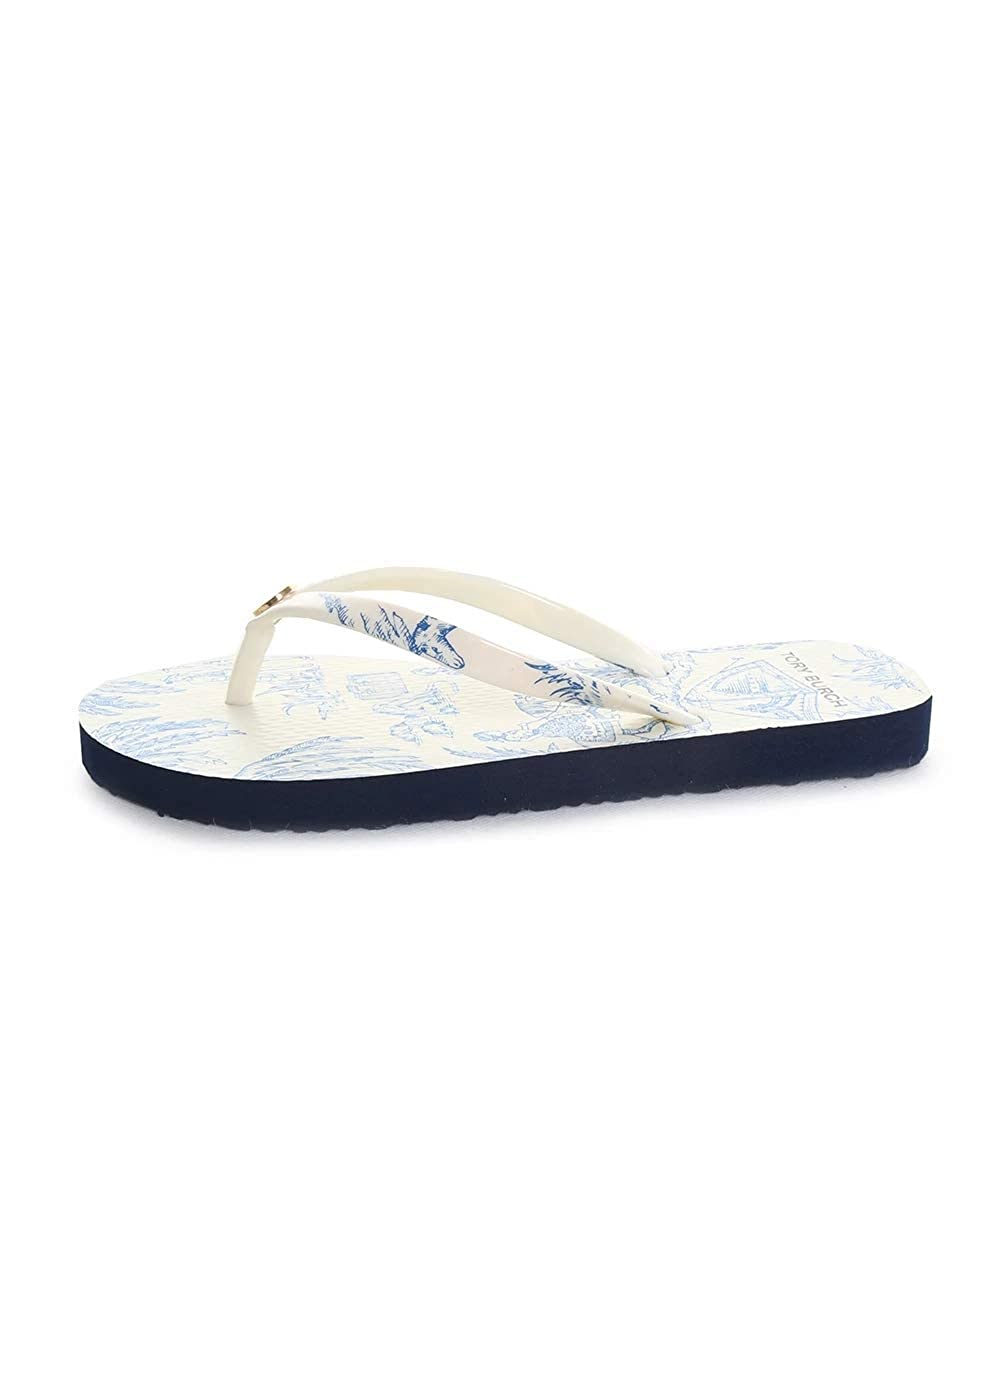 3e9718f060656 Tory Burch Women's Thin Flip Flop